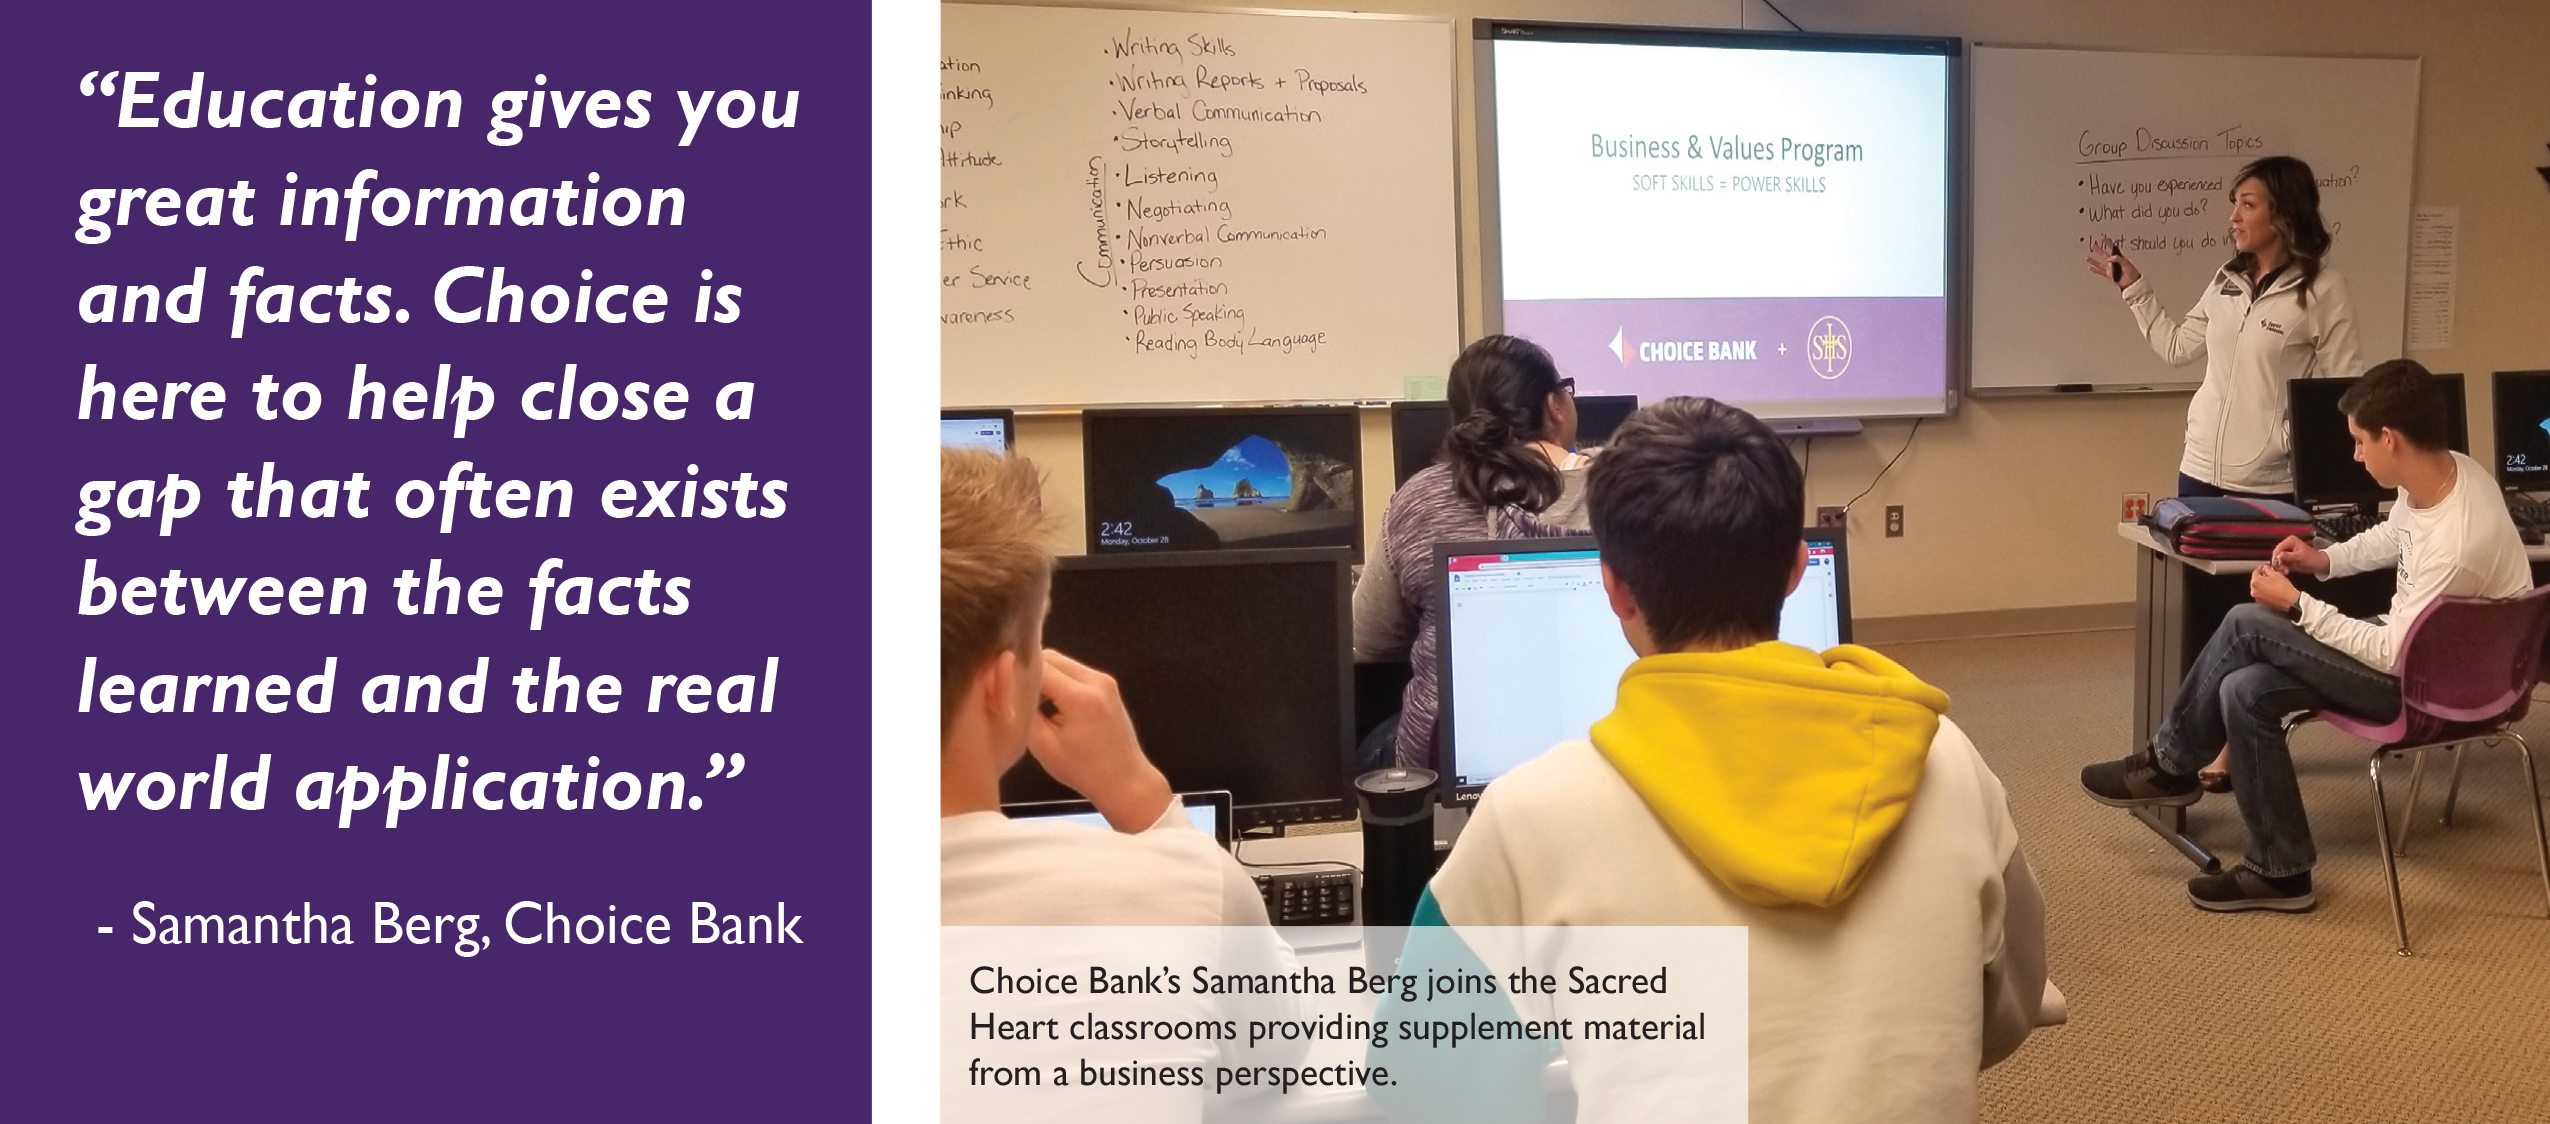 Choice Bank's Samantha Berg joins the Sacred Heart classrooms providing supplement material from a business perspective.